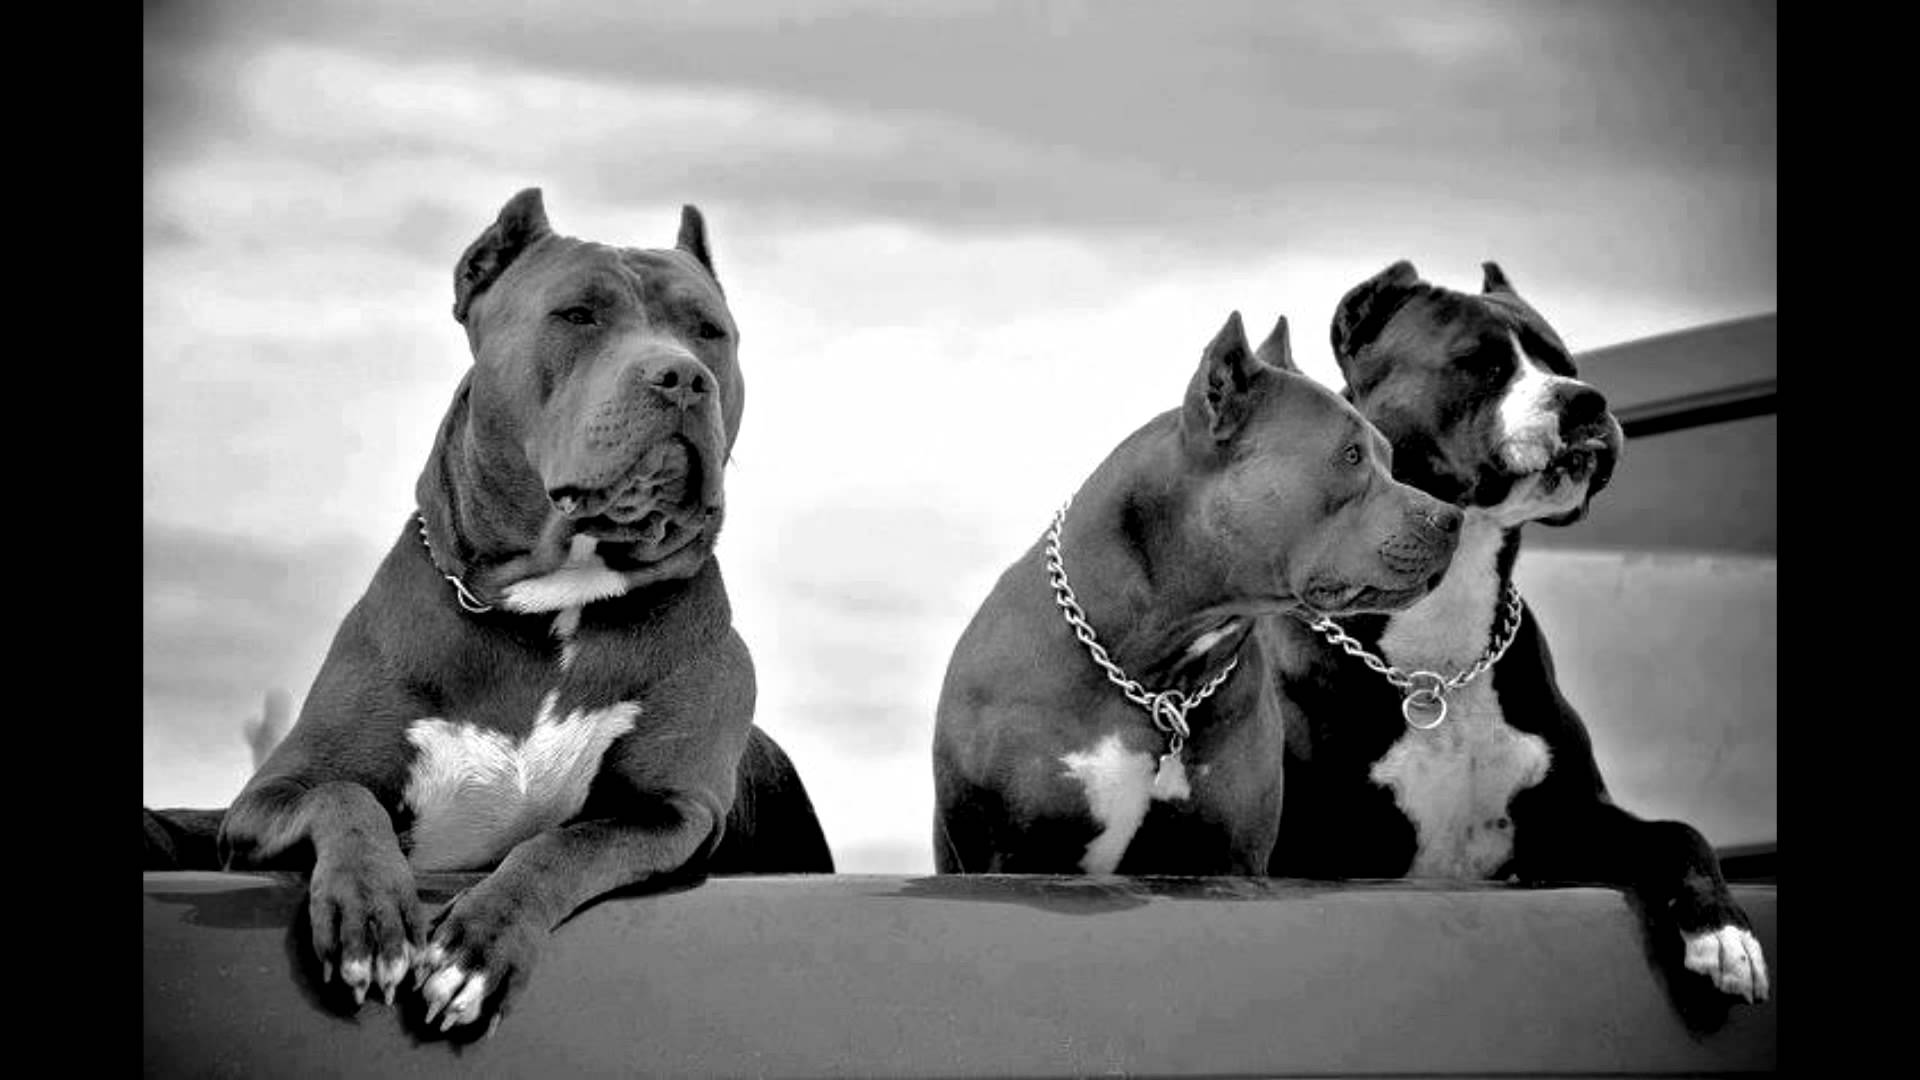 Pitbull Wallpaper Hd